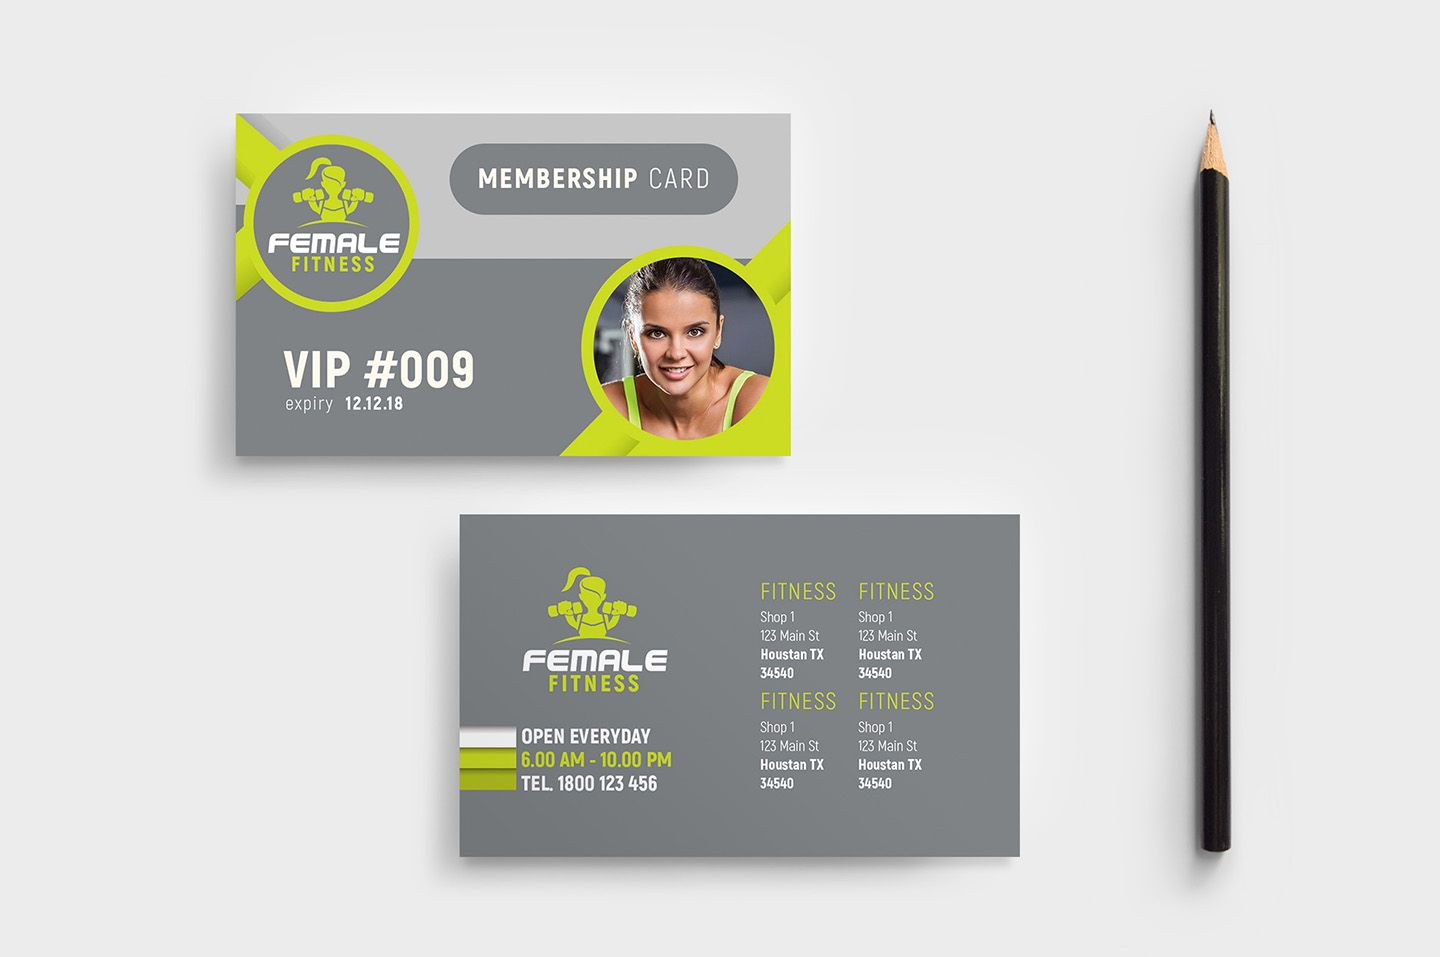 The Astounding Female Fitness Membership Card Template In Psd Ai Regarding Template For Membership Cards Imag Fitness Membership Membership Card Card Template